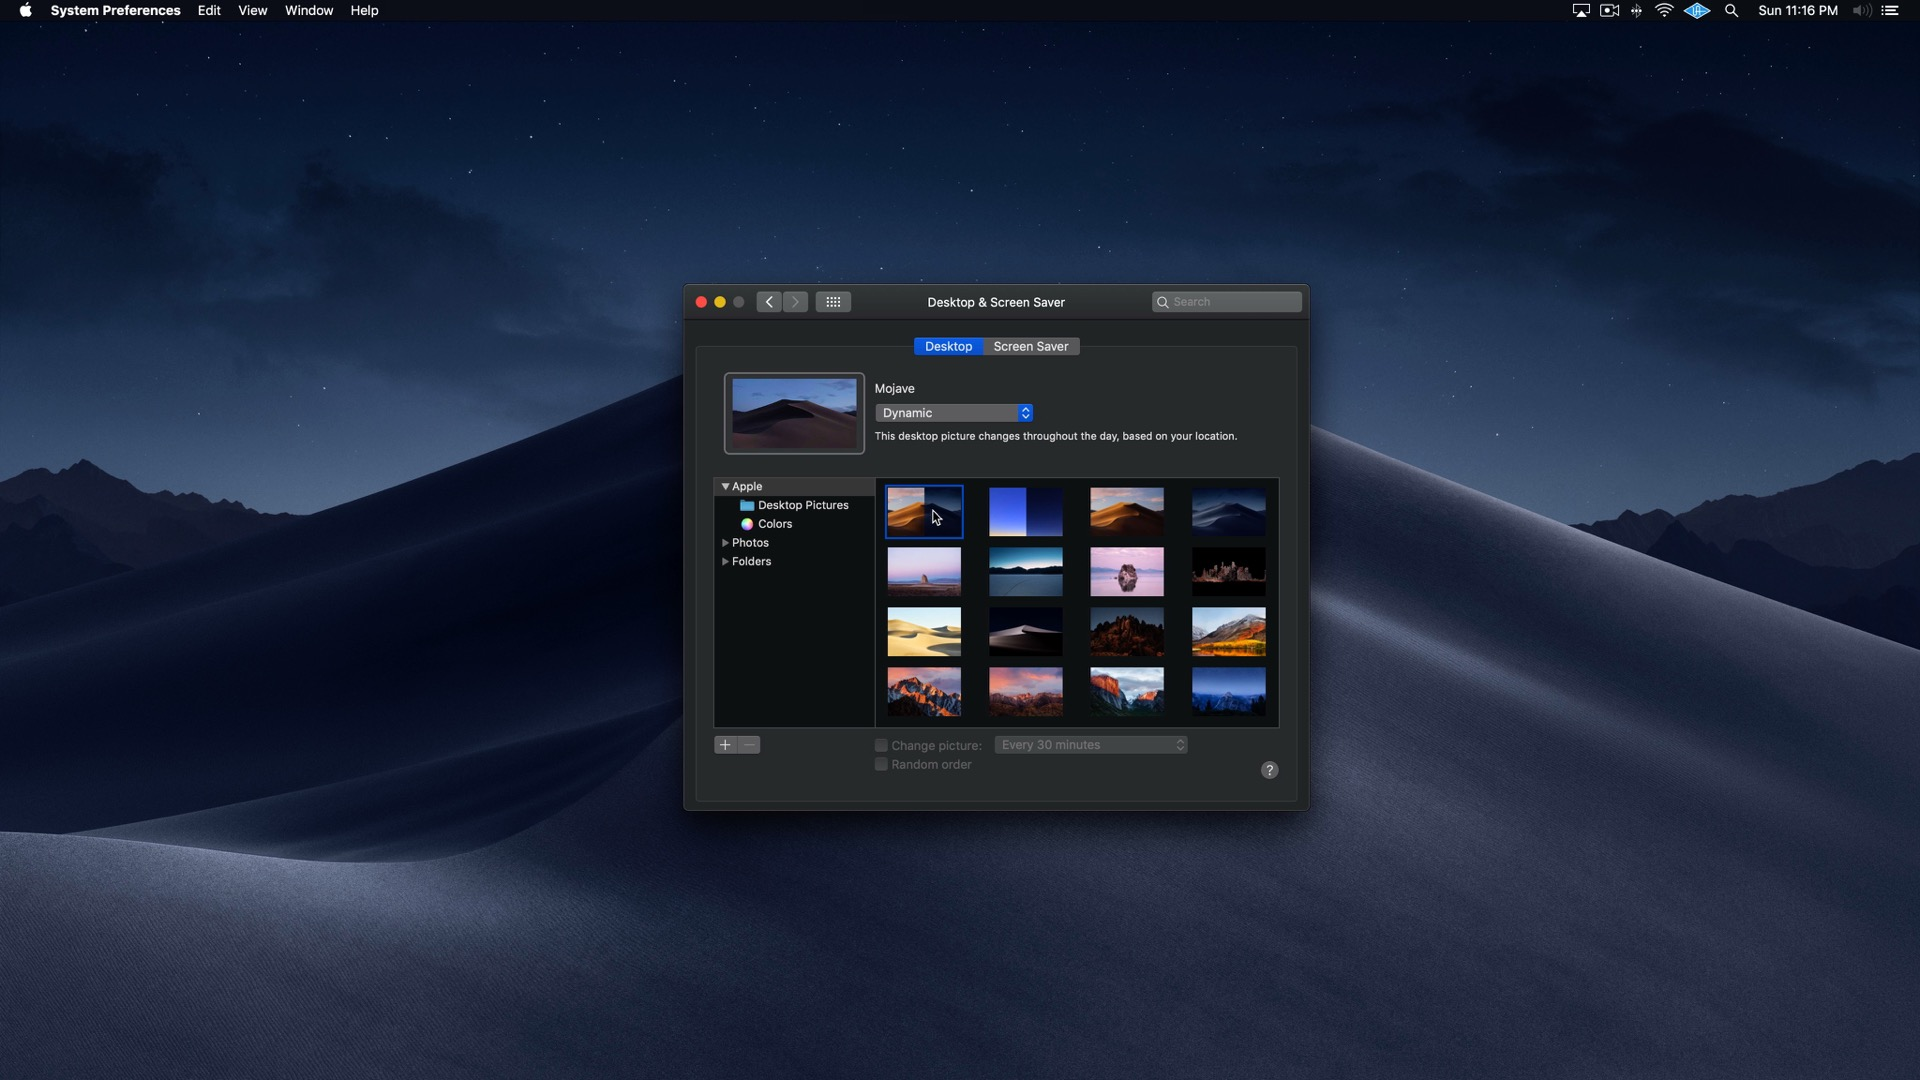 macOS Mojave: Hands-on with 20+ new changes and features